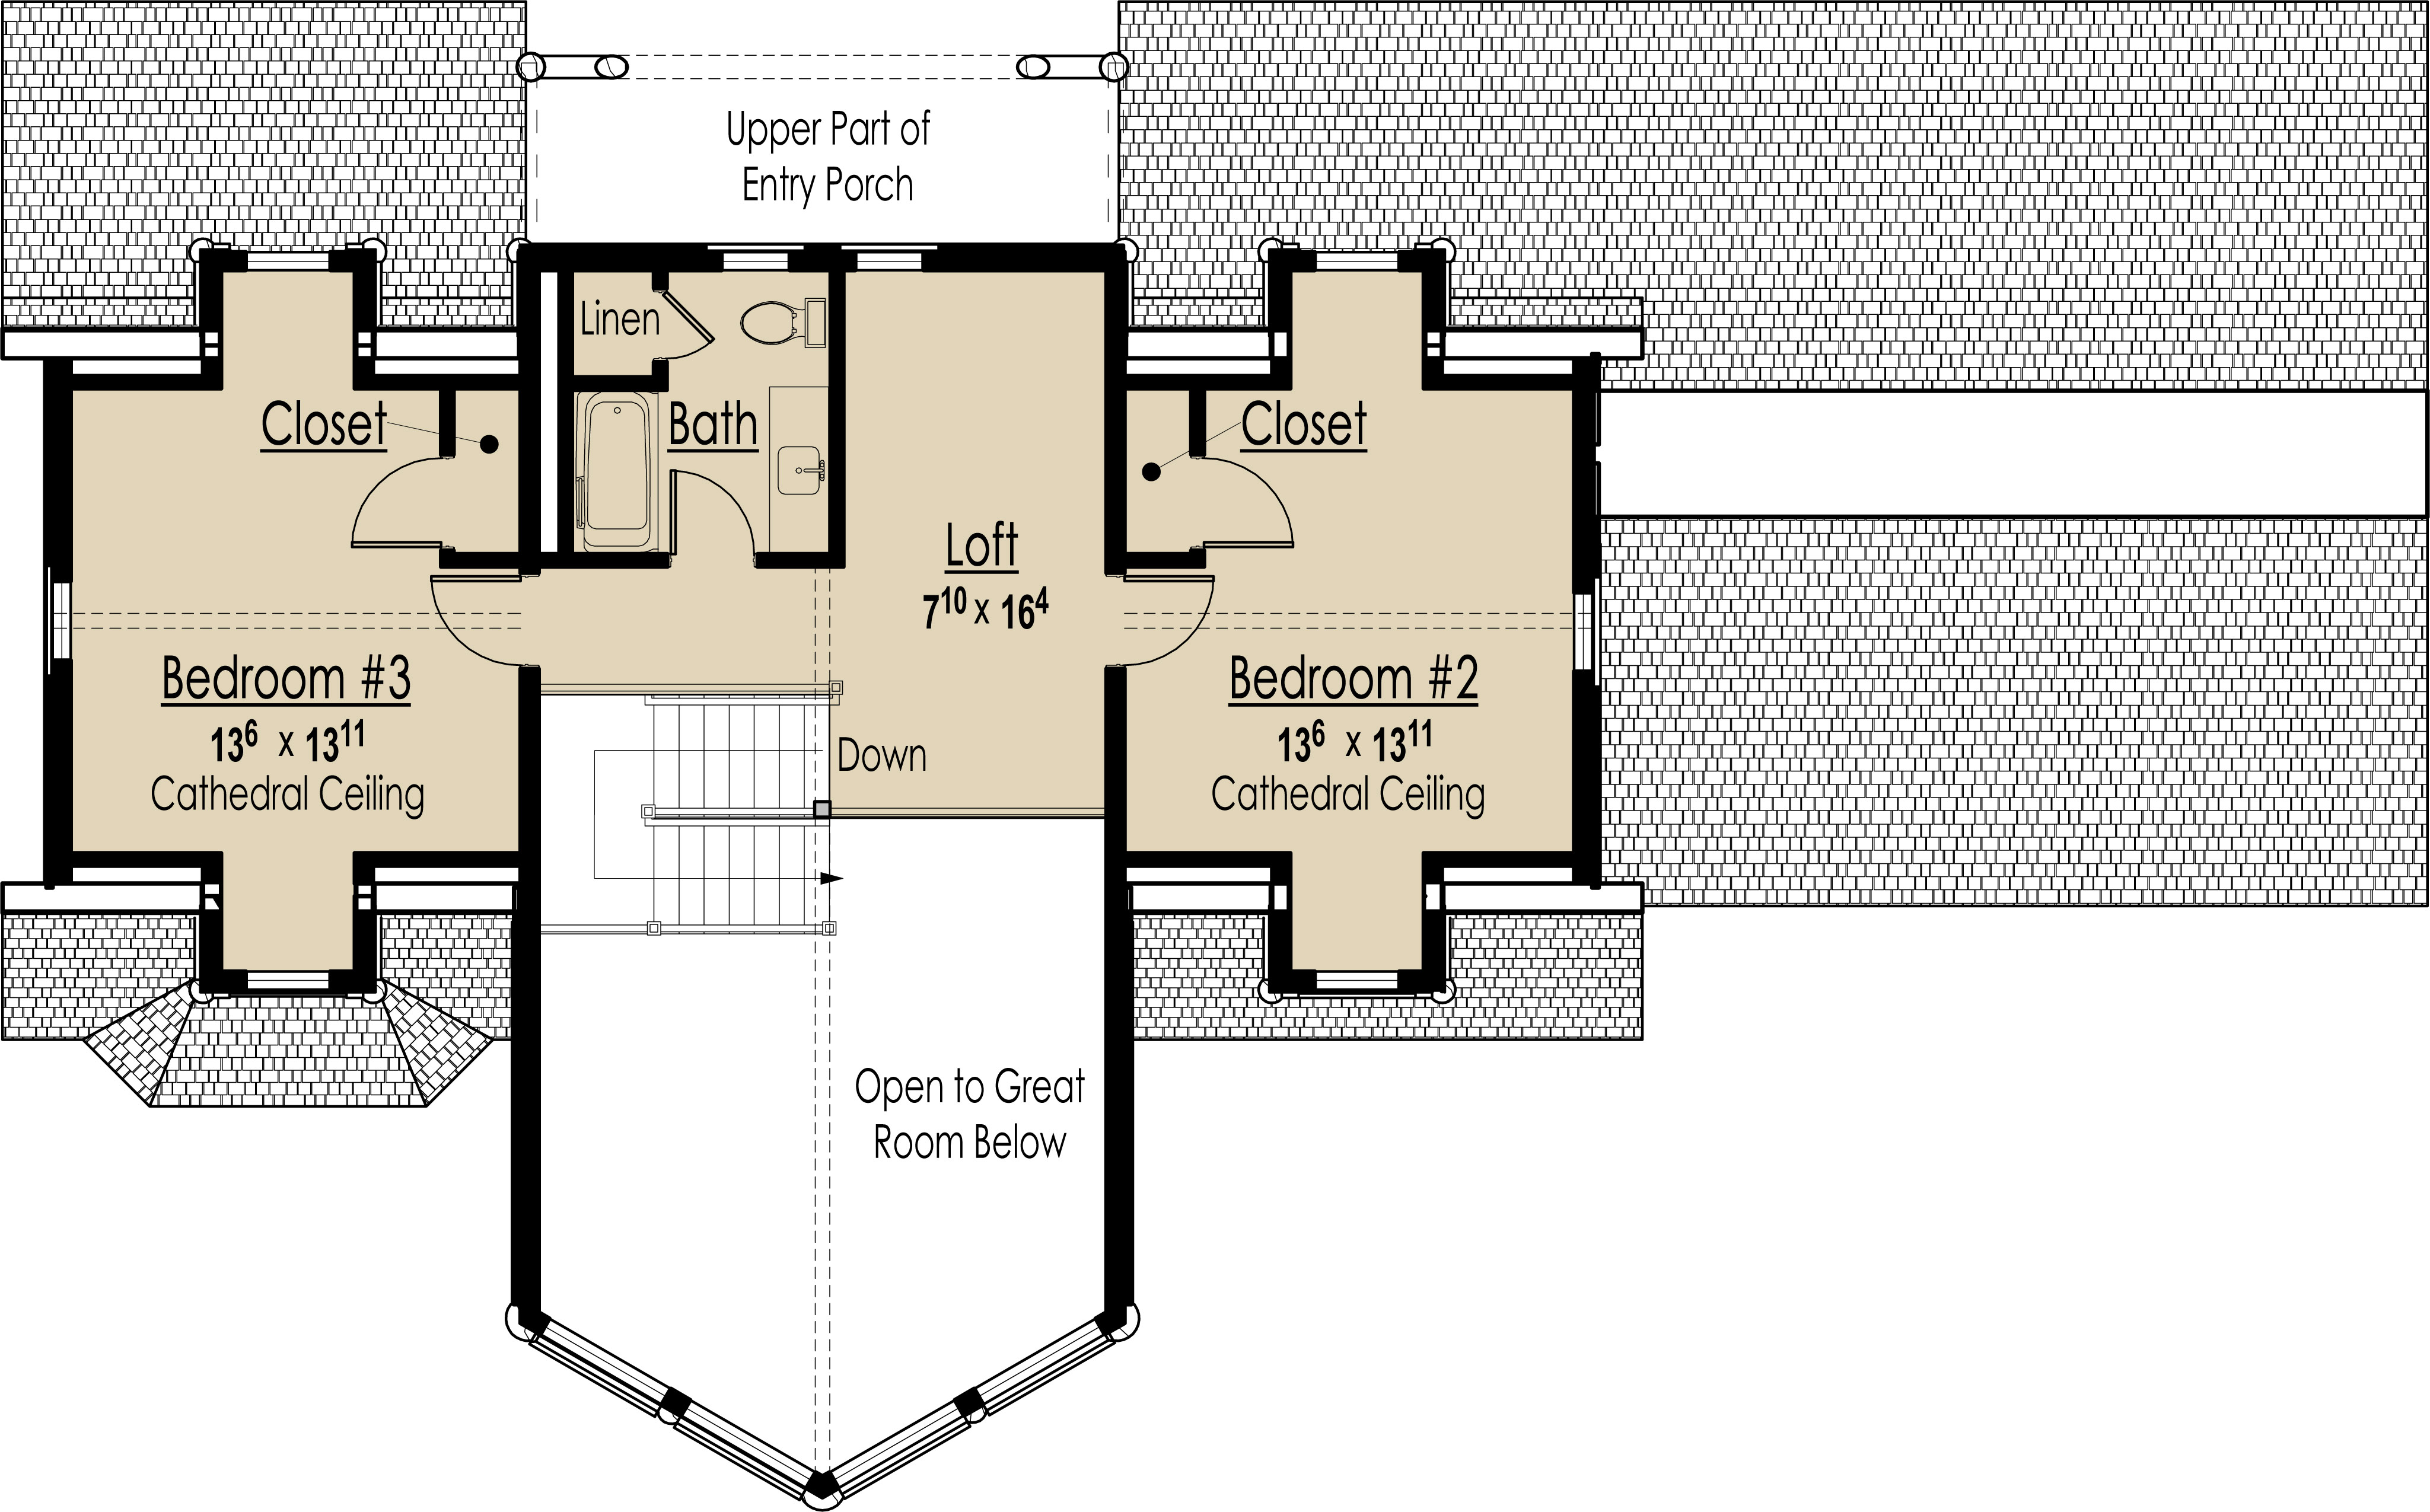 Second Level Floor Plan image of Mountain Lodge House Plan